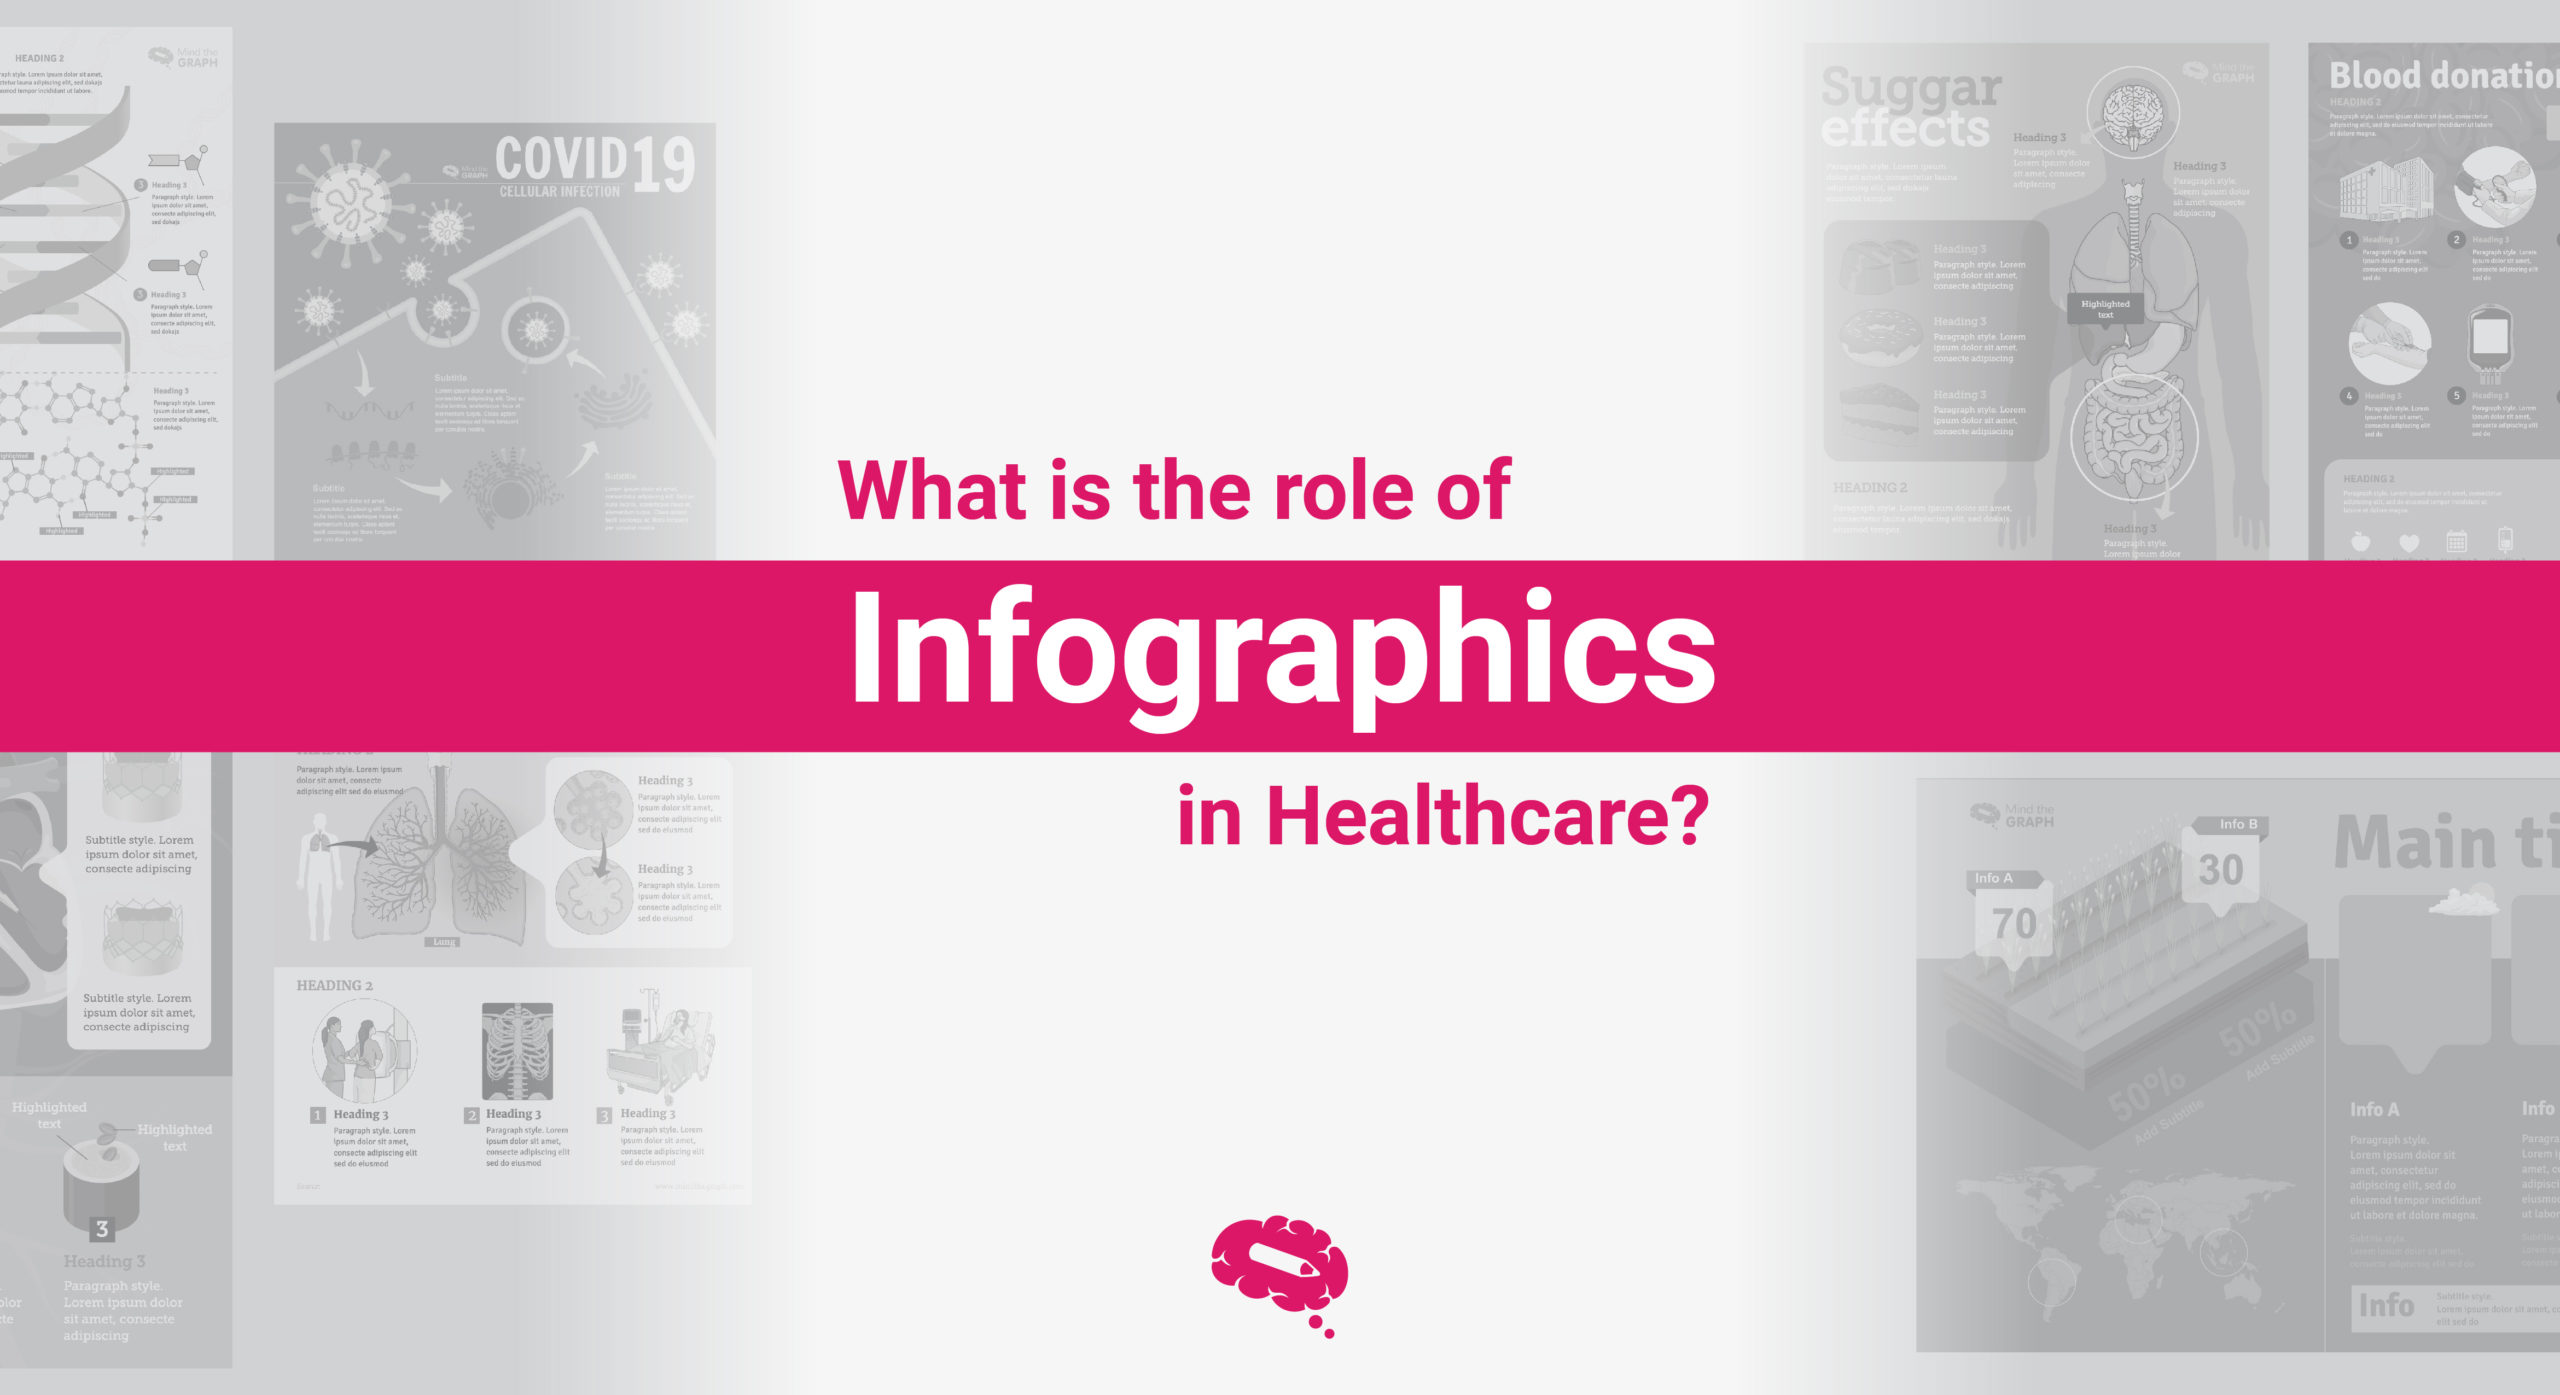 infographics in healthcare